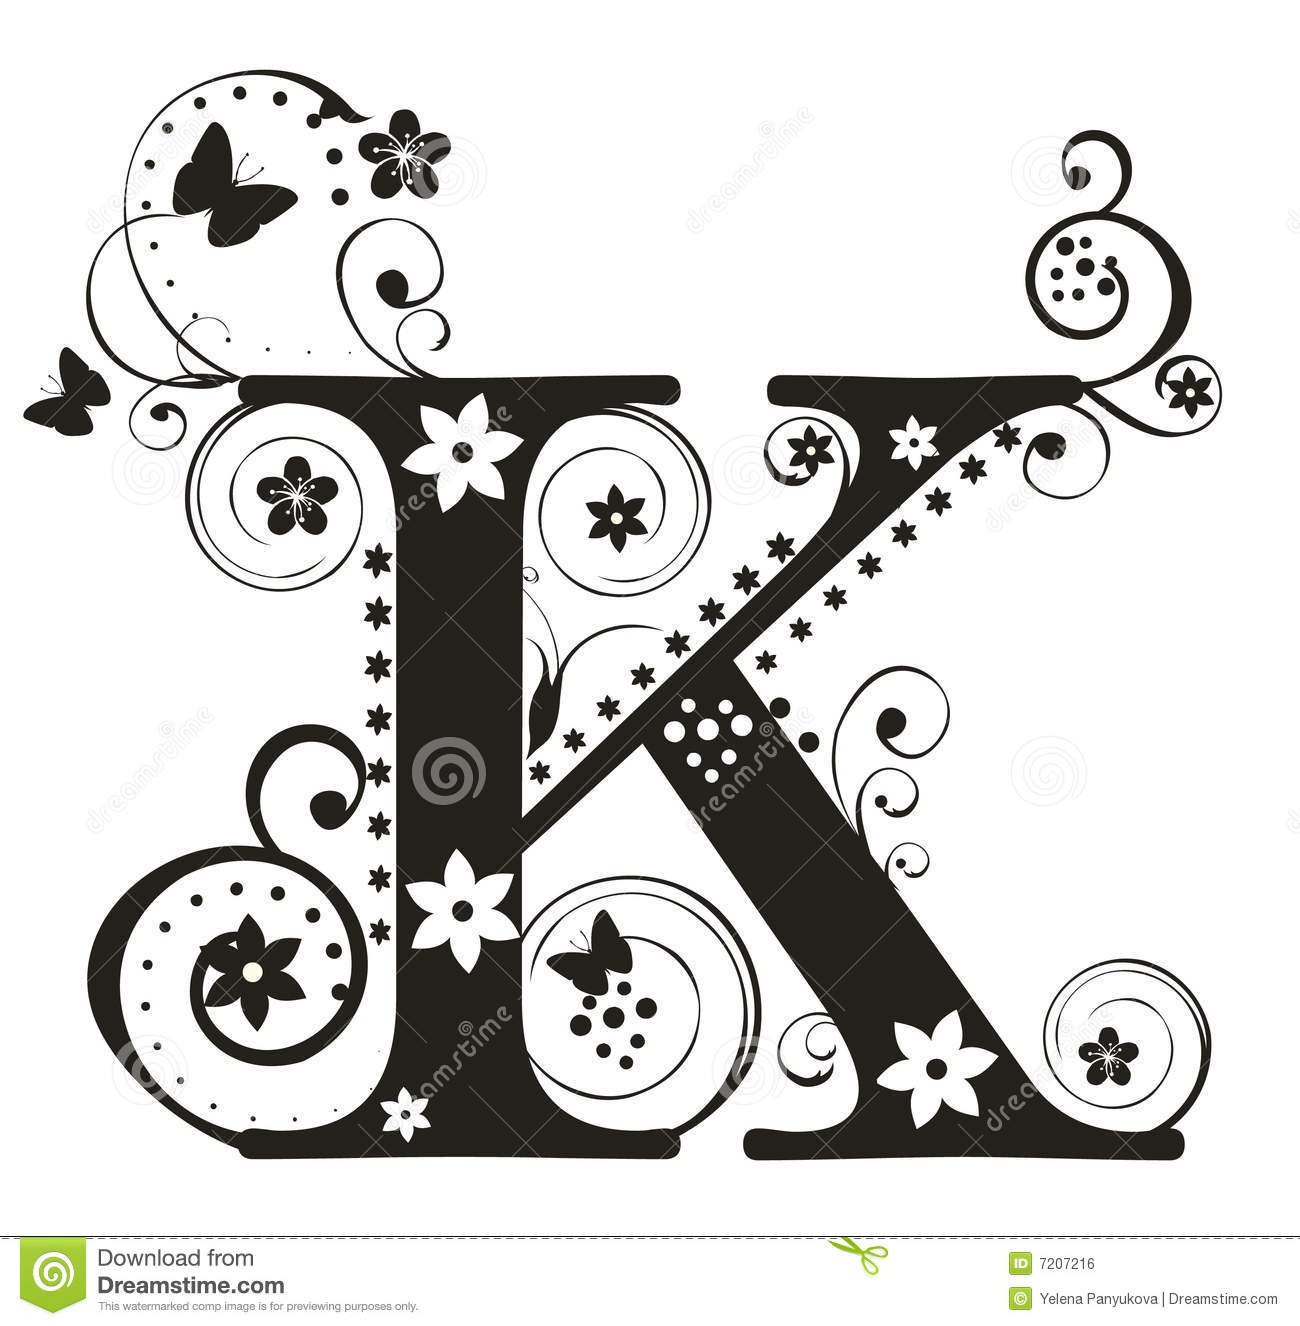 Letter K Royalty Free Stock Image - Image: 7207216